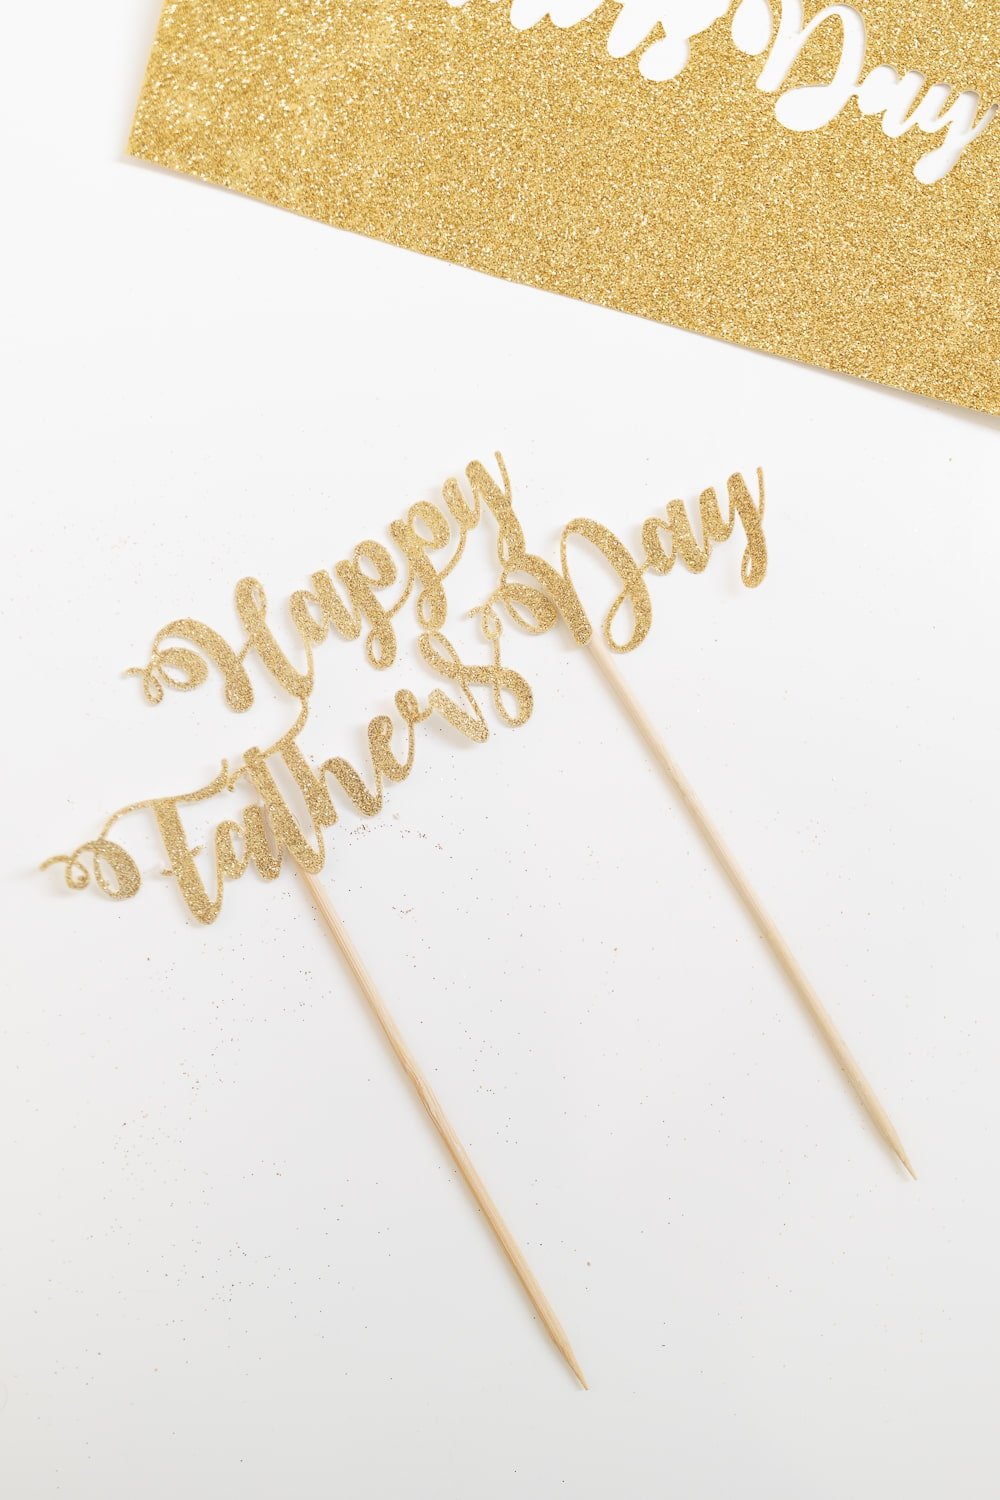 Father's Day glitter cake topper DIY tutorial by blogger Stephanie Ziajka on Diary of a Debutante